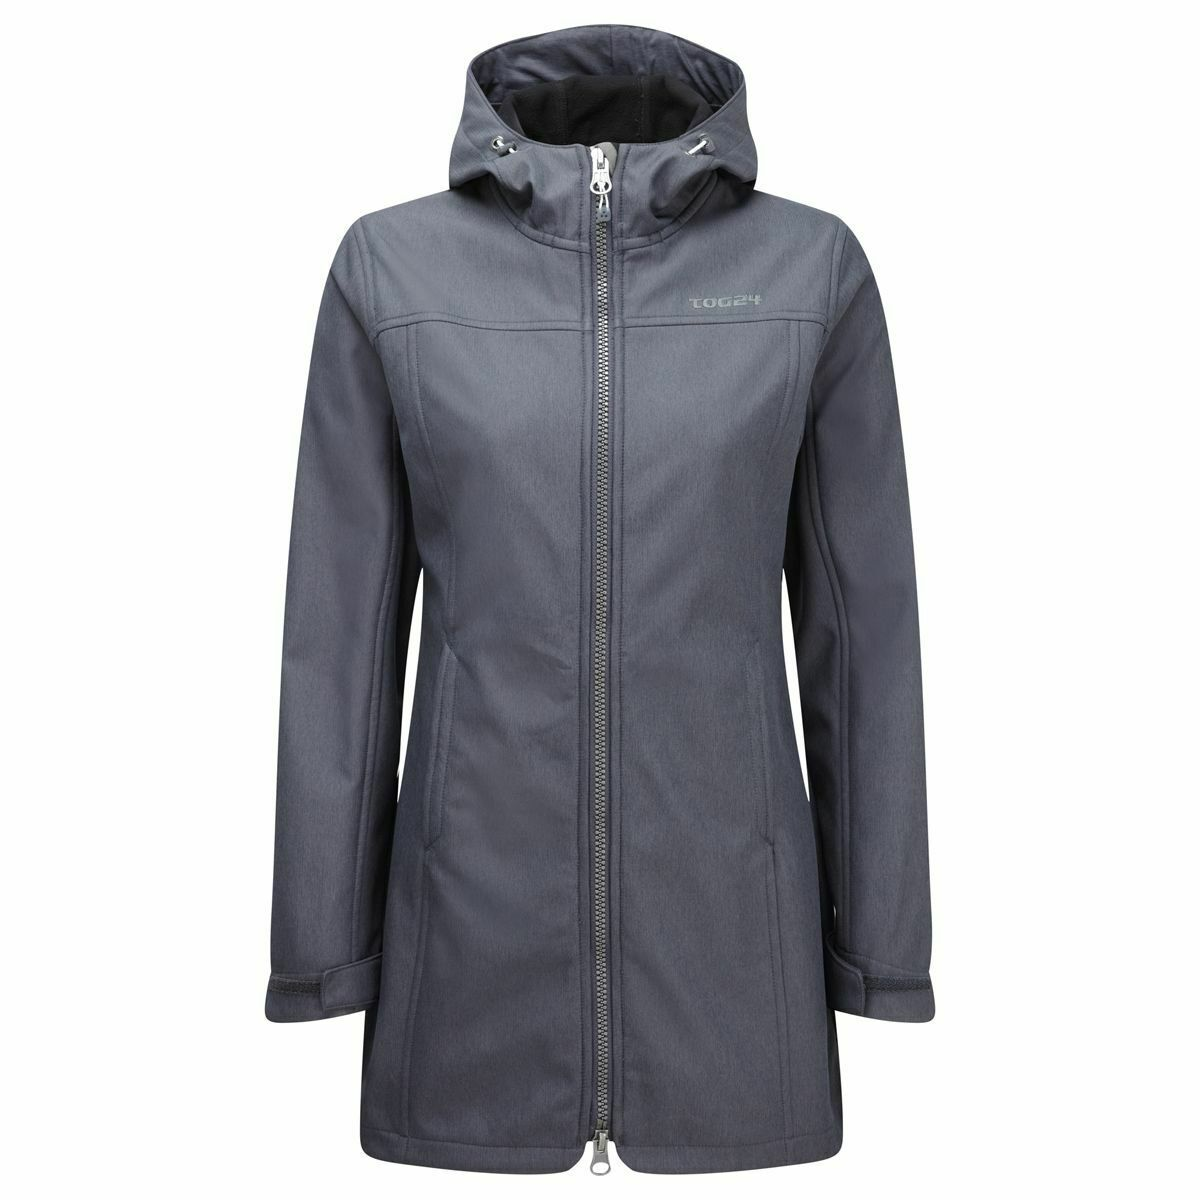 Tog24 LINEA DONNA LAUREL TCZ Giacca Softshell Nero Screziato RRP .95 JS097 mm 12